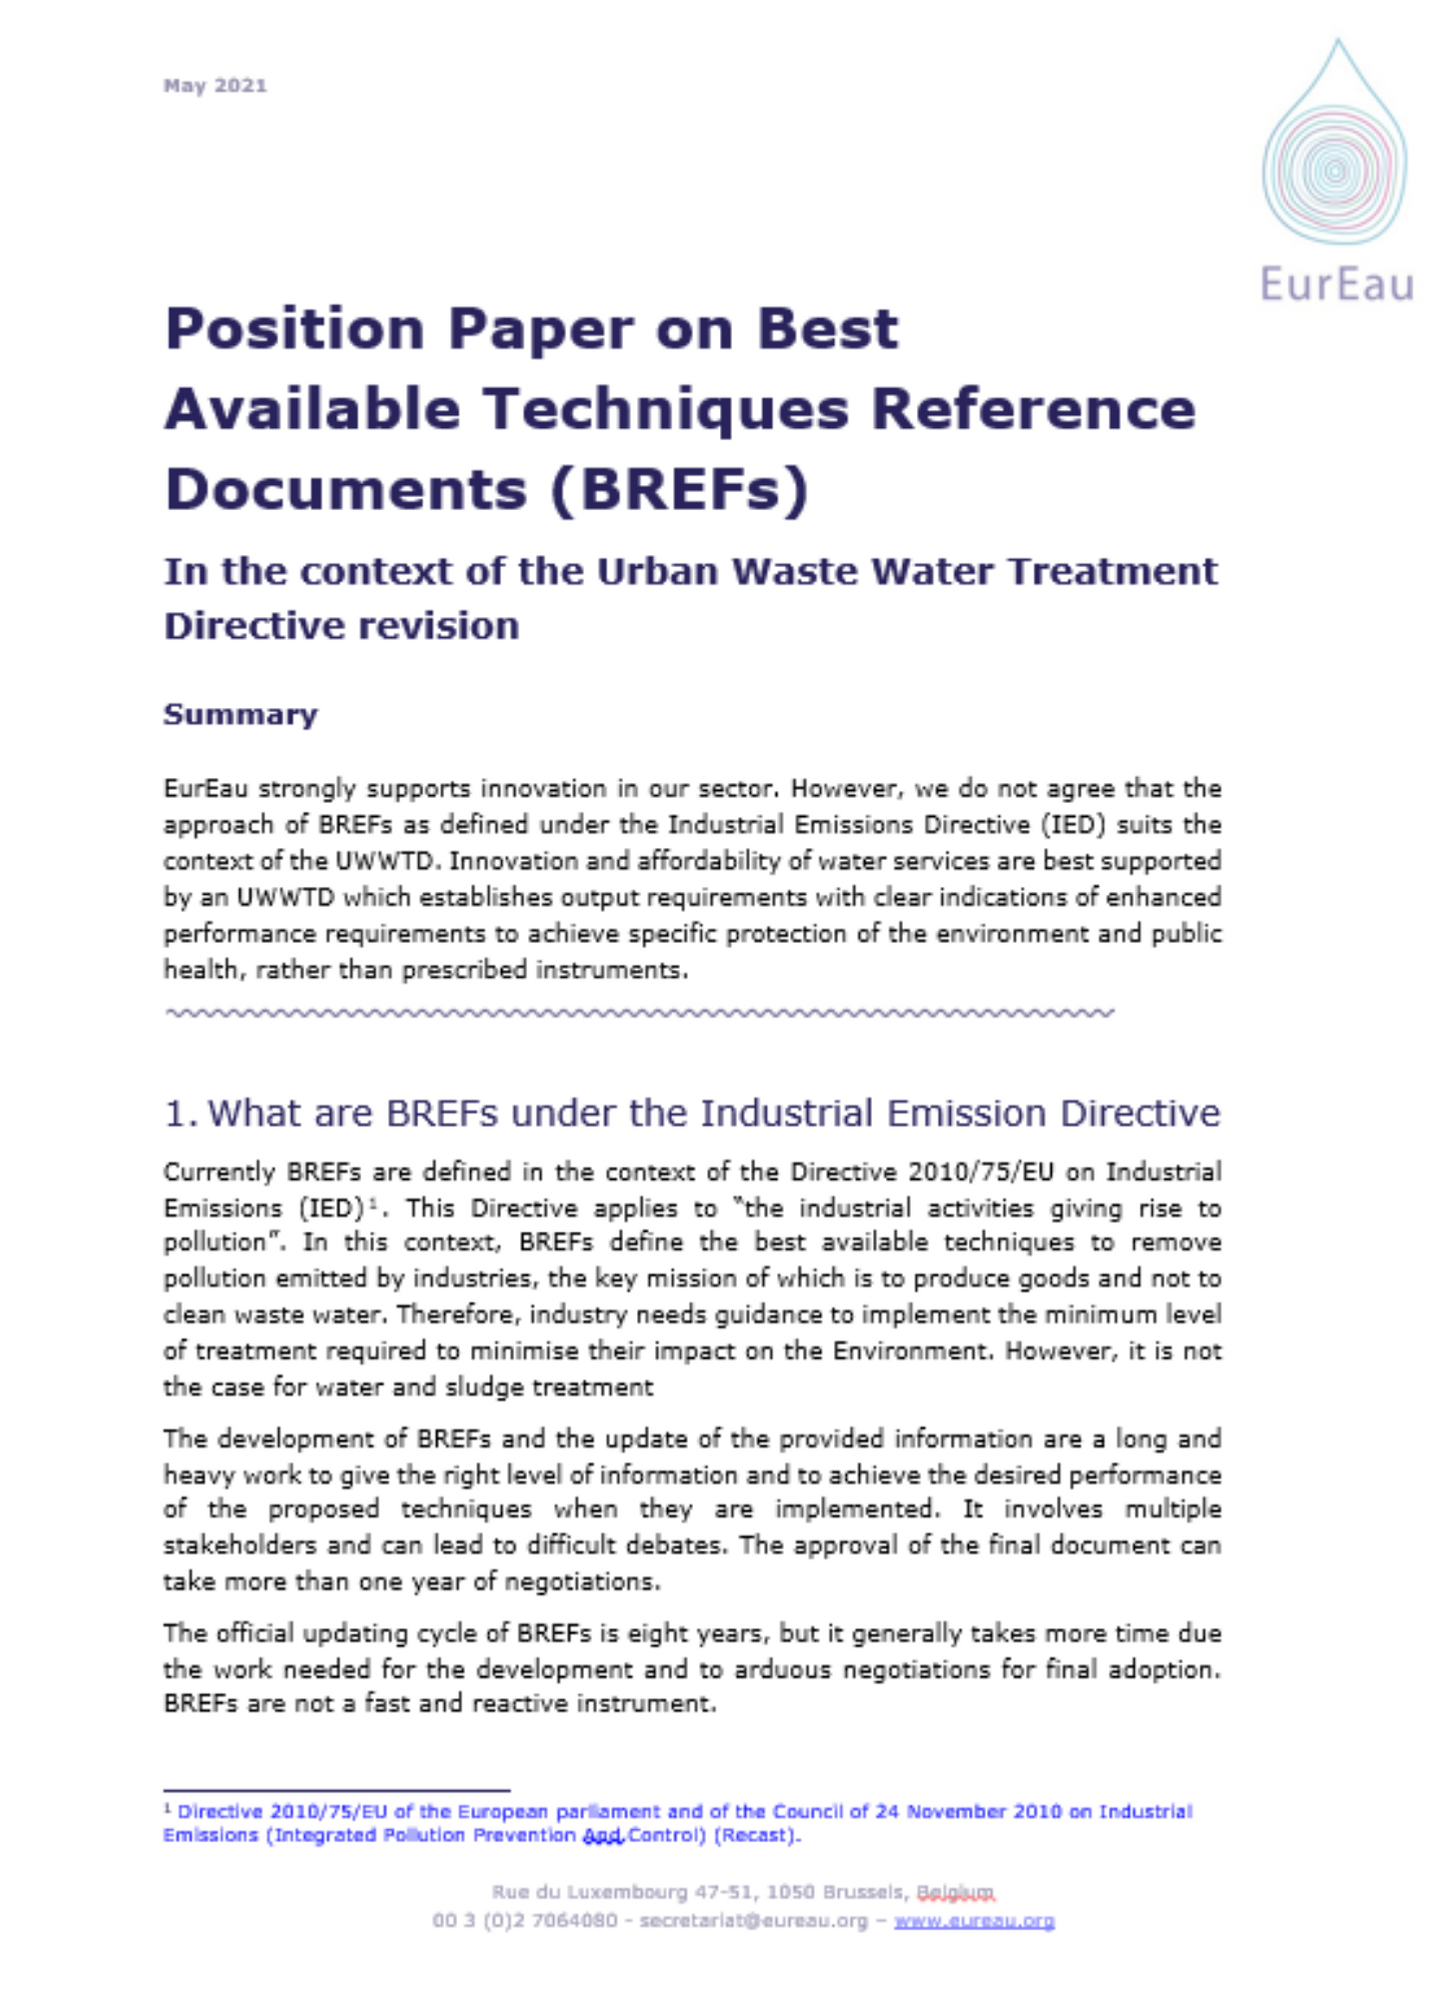 Position Paper on Best Available Techniques Reference Documents (BREFs)